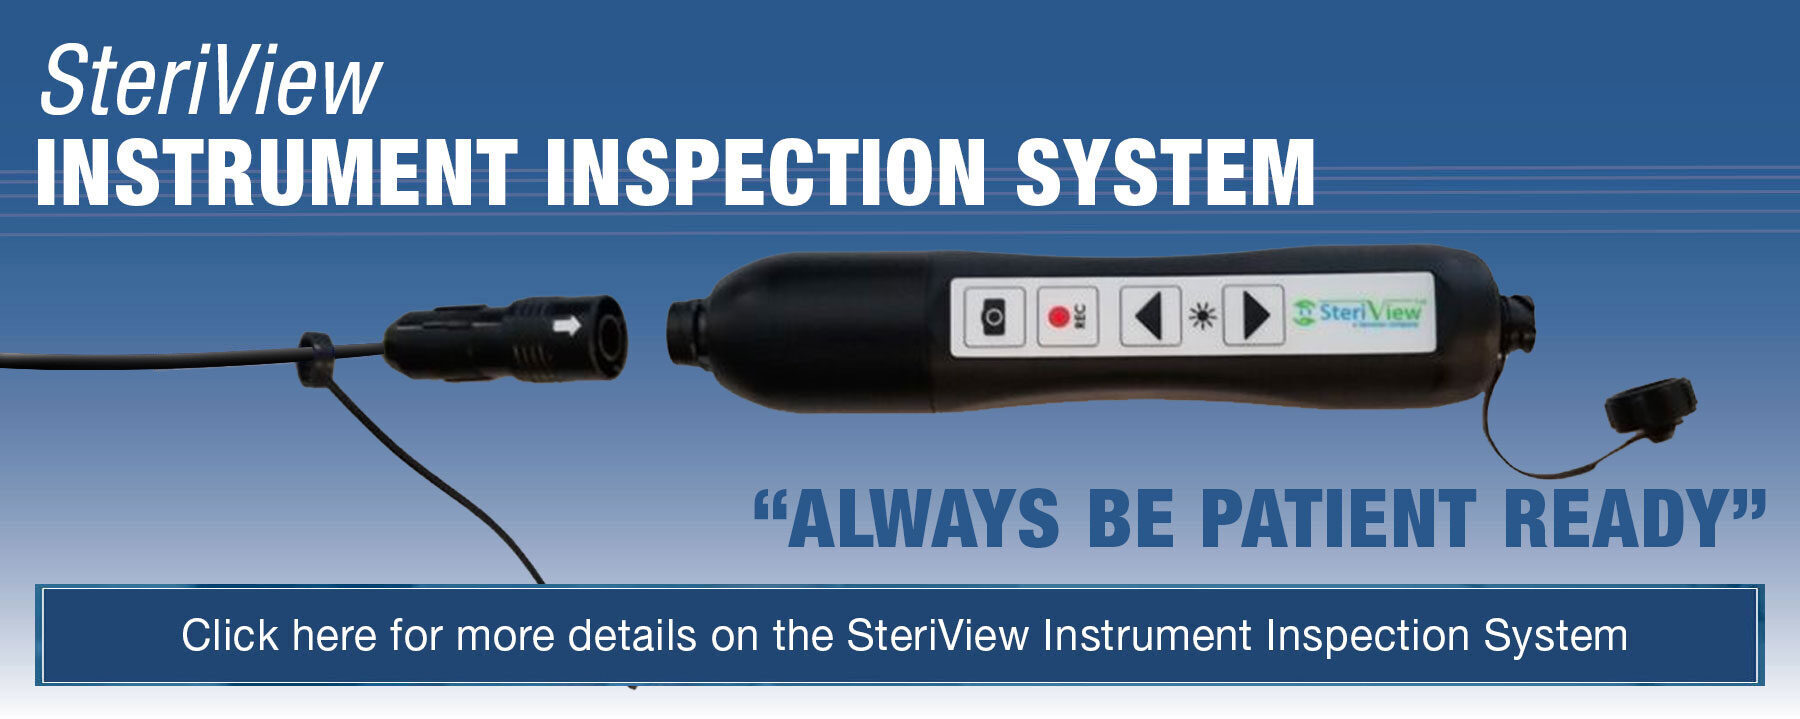 Steriview Instrument Inspection System